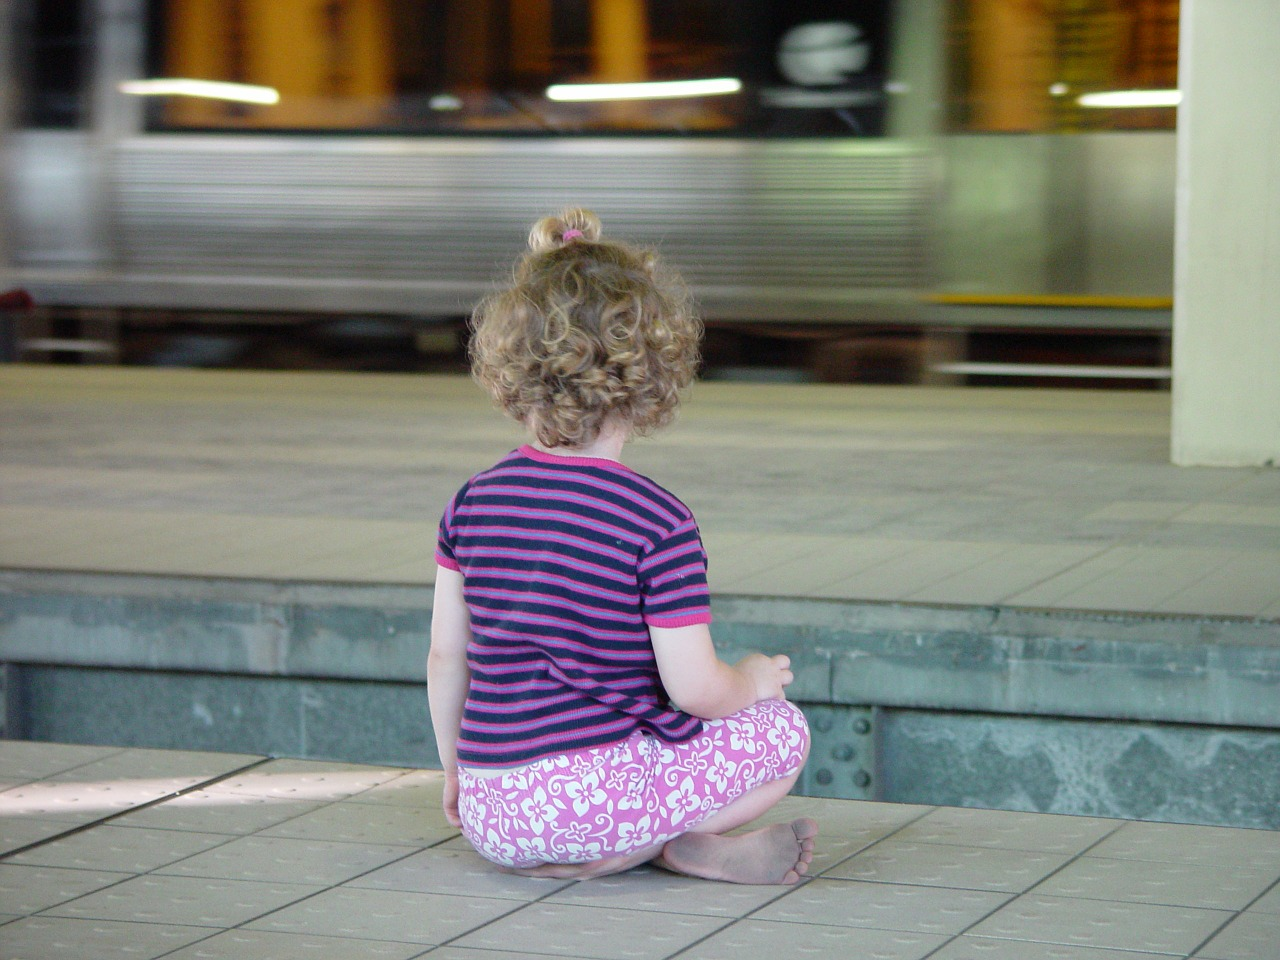 child sit metro free picture